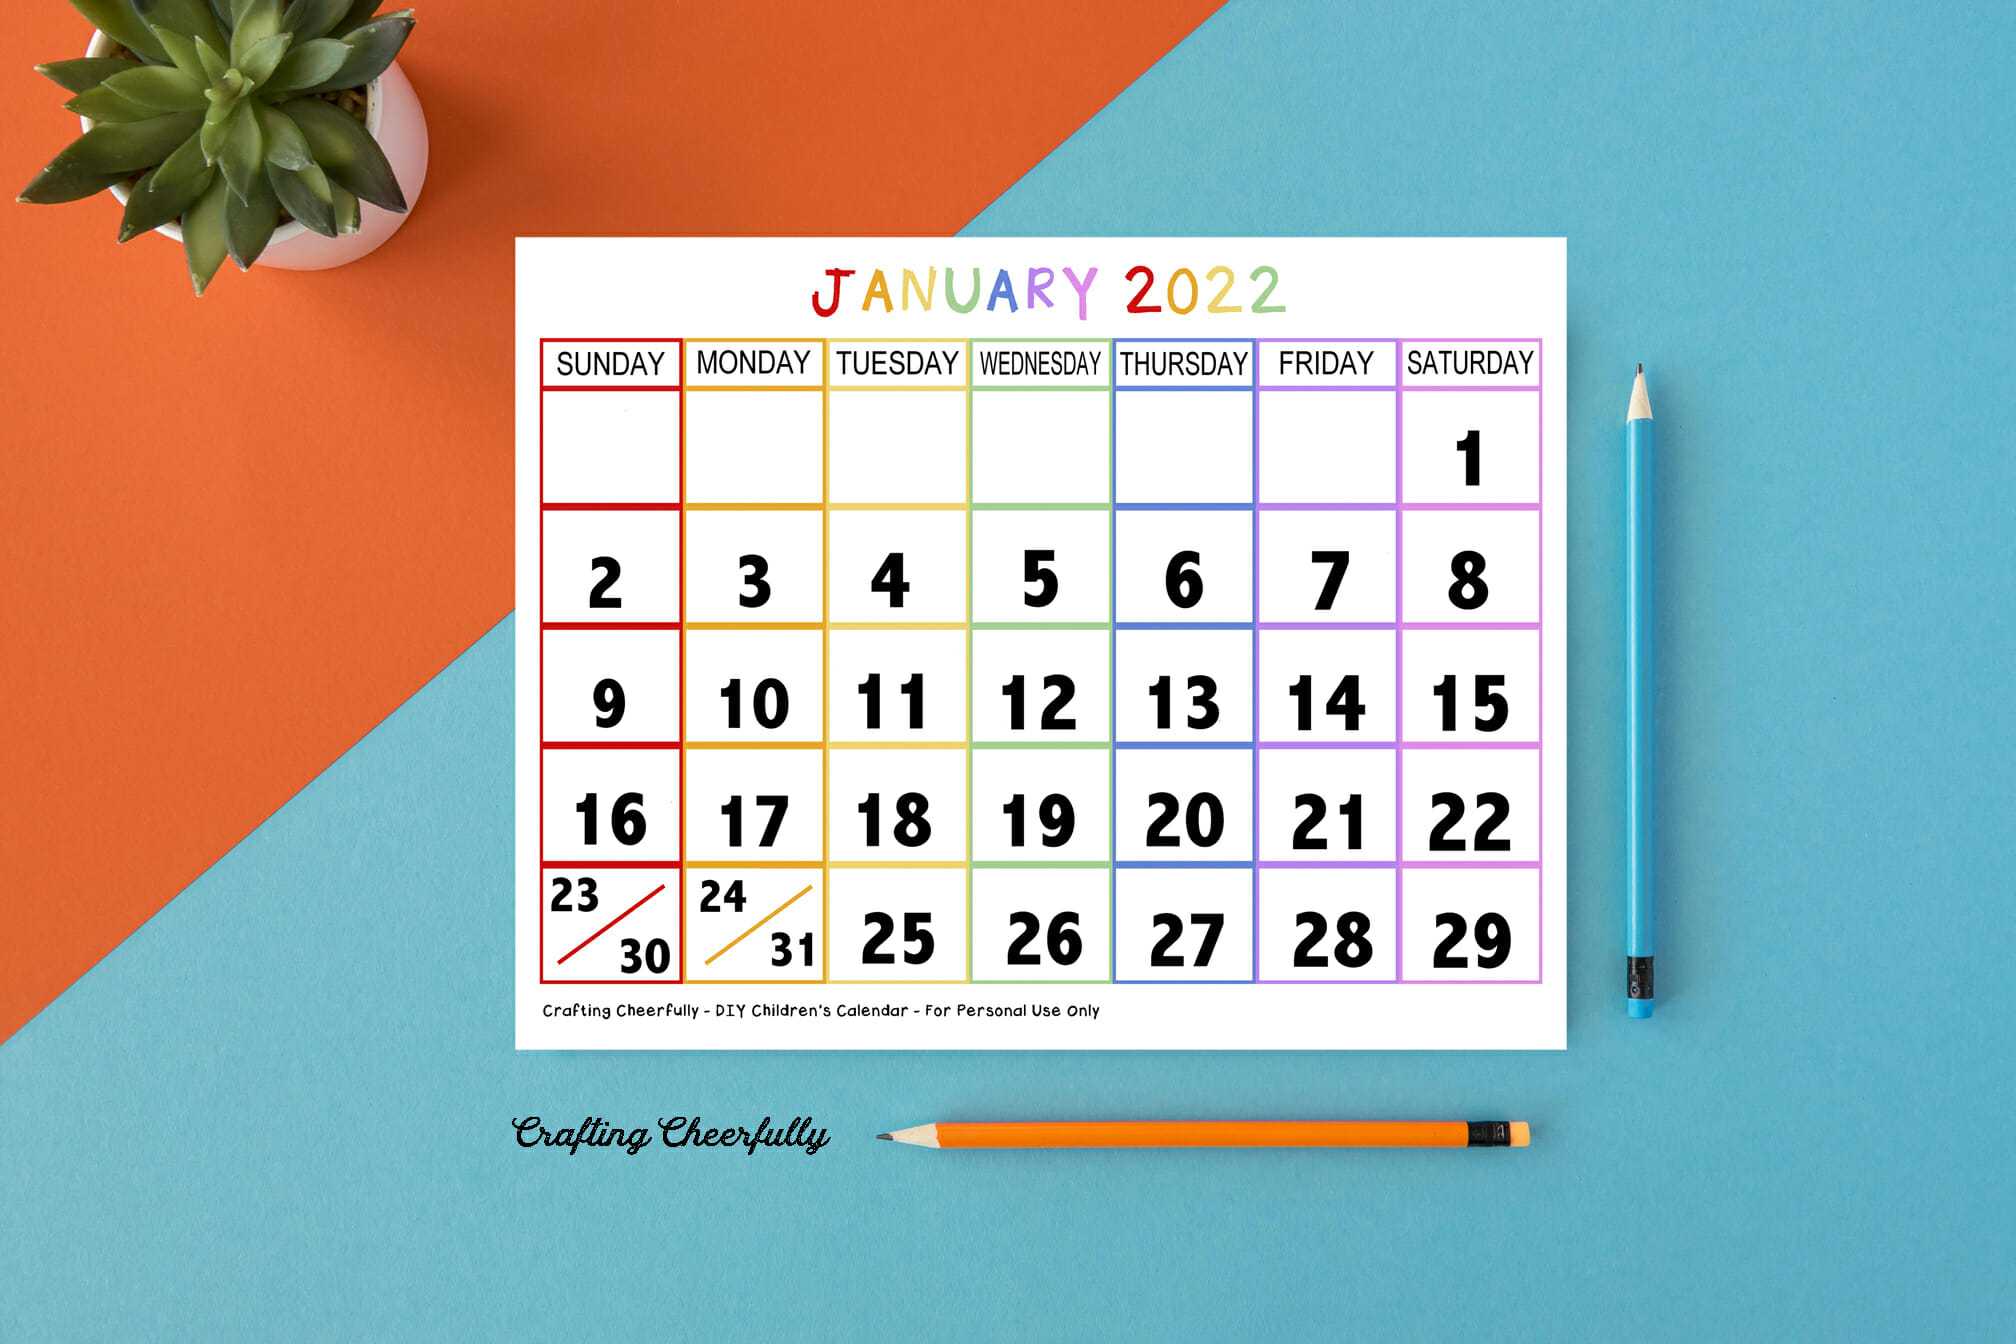 2022 Calendar page laying on an orange and teal background with pencils and a mini plant.